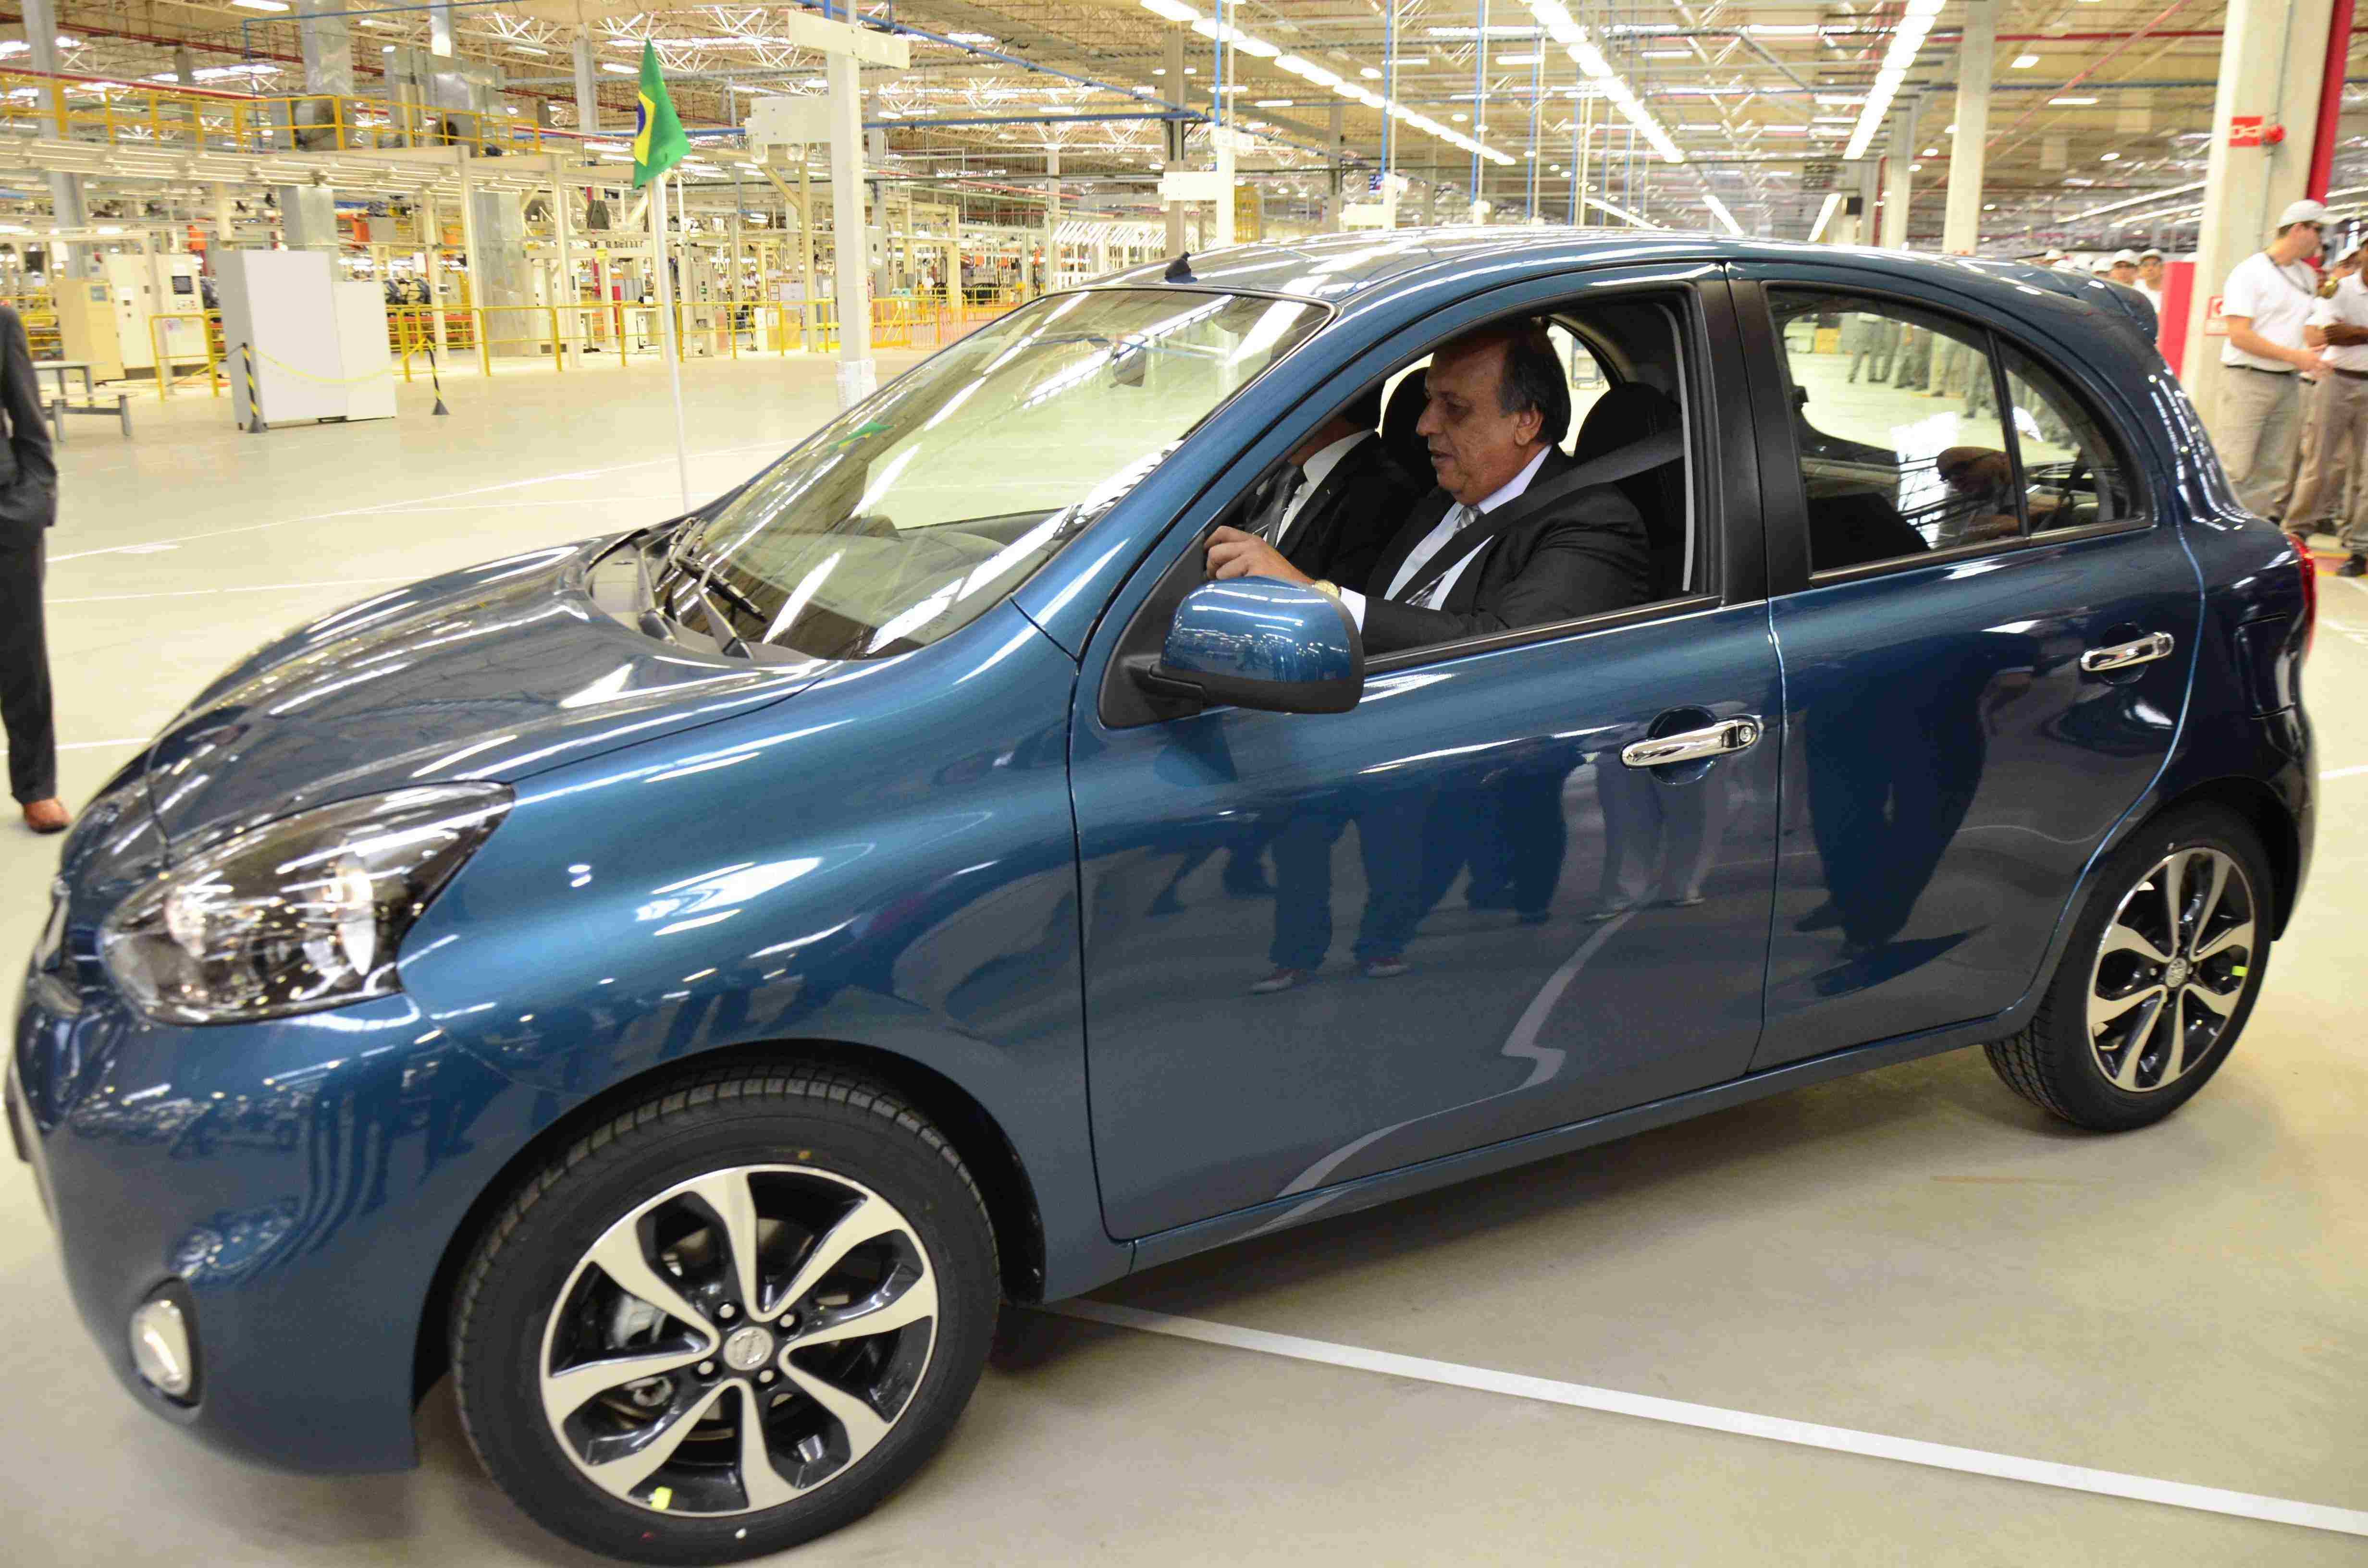 RIO DE JANEIRO, Brazil (April 15, 2014) - Today Nissan officially opened its R .6 billion (USD .5 billion) * industrial complex in Resende, Rio de Janeiro, Brazil, marking one of the largest automotive investments by any manufacturer in the country. This investment is part of an effort to achieve five percent market share and to become the number one Japanese automotive brand in Brazil.